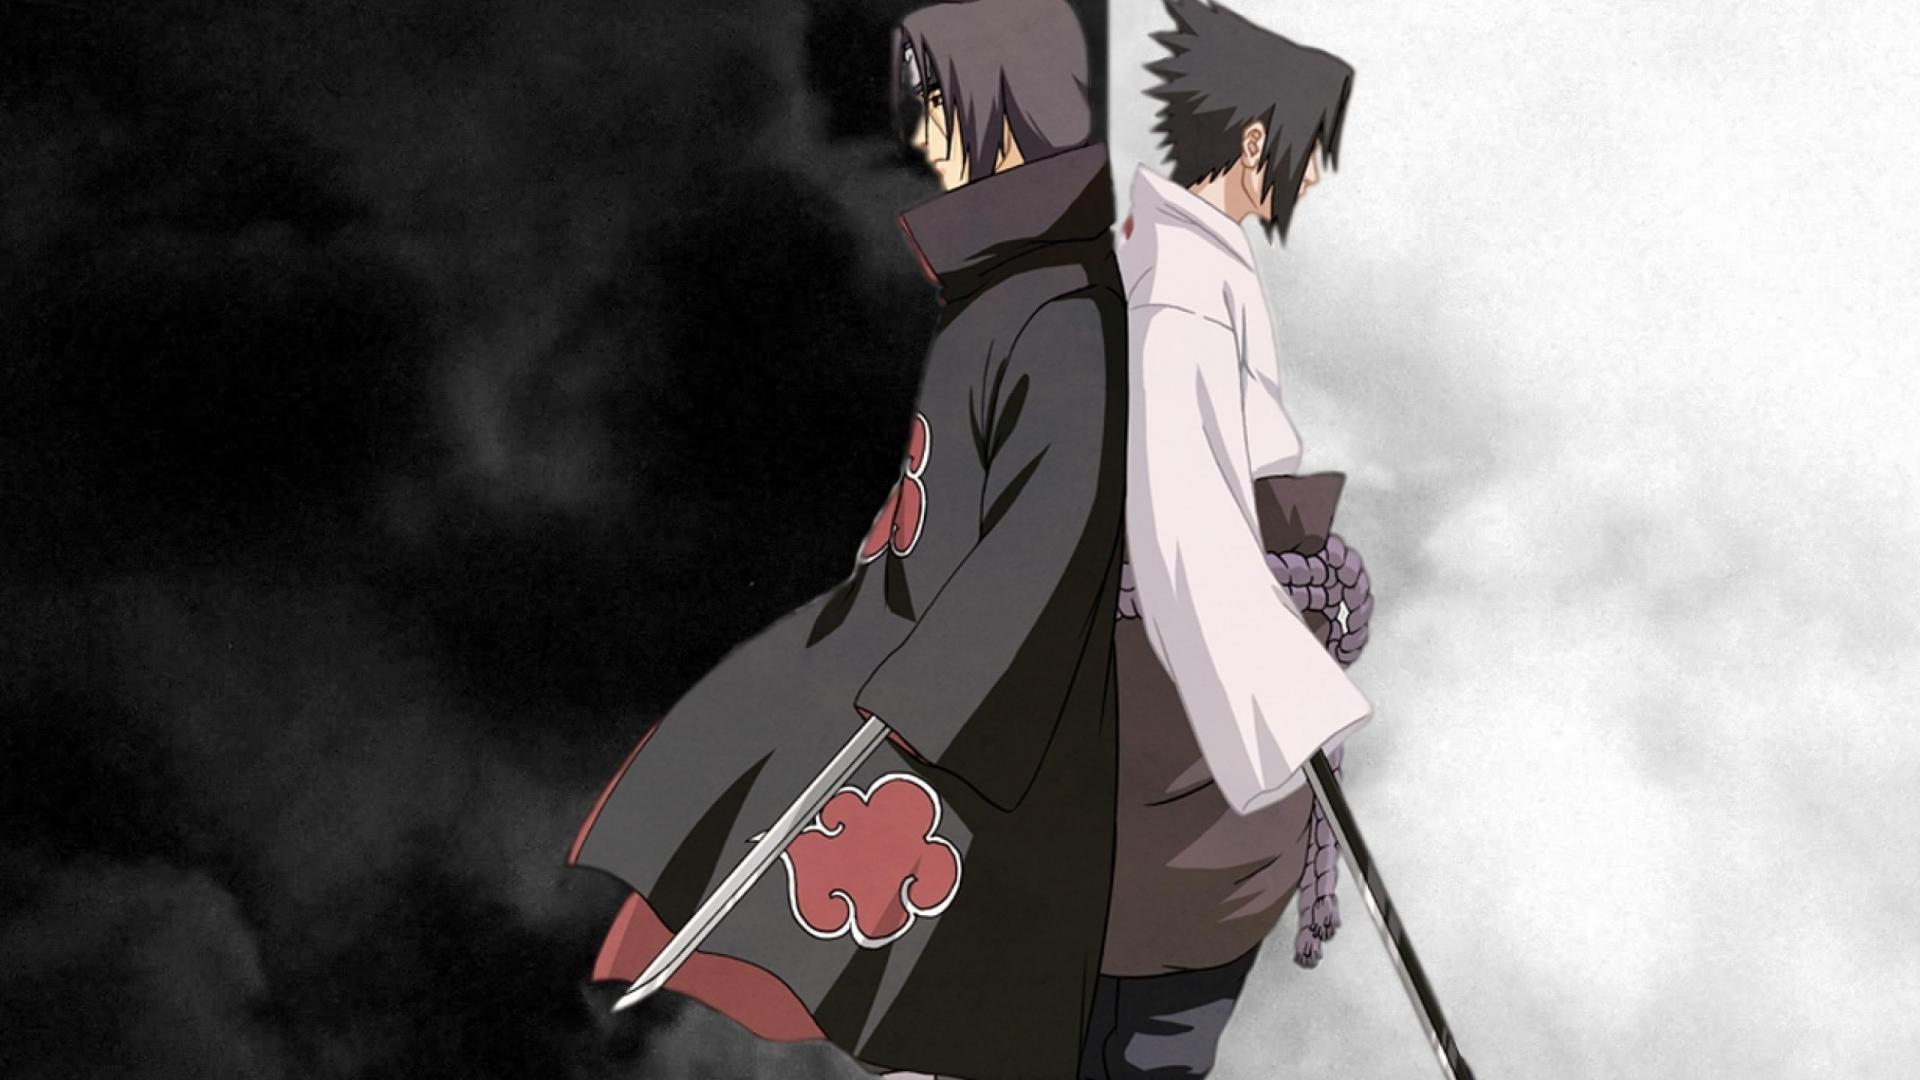 Itachi and Sasuke